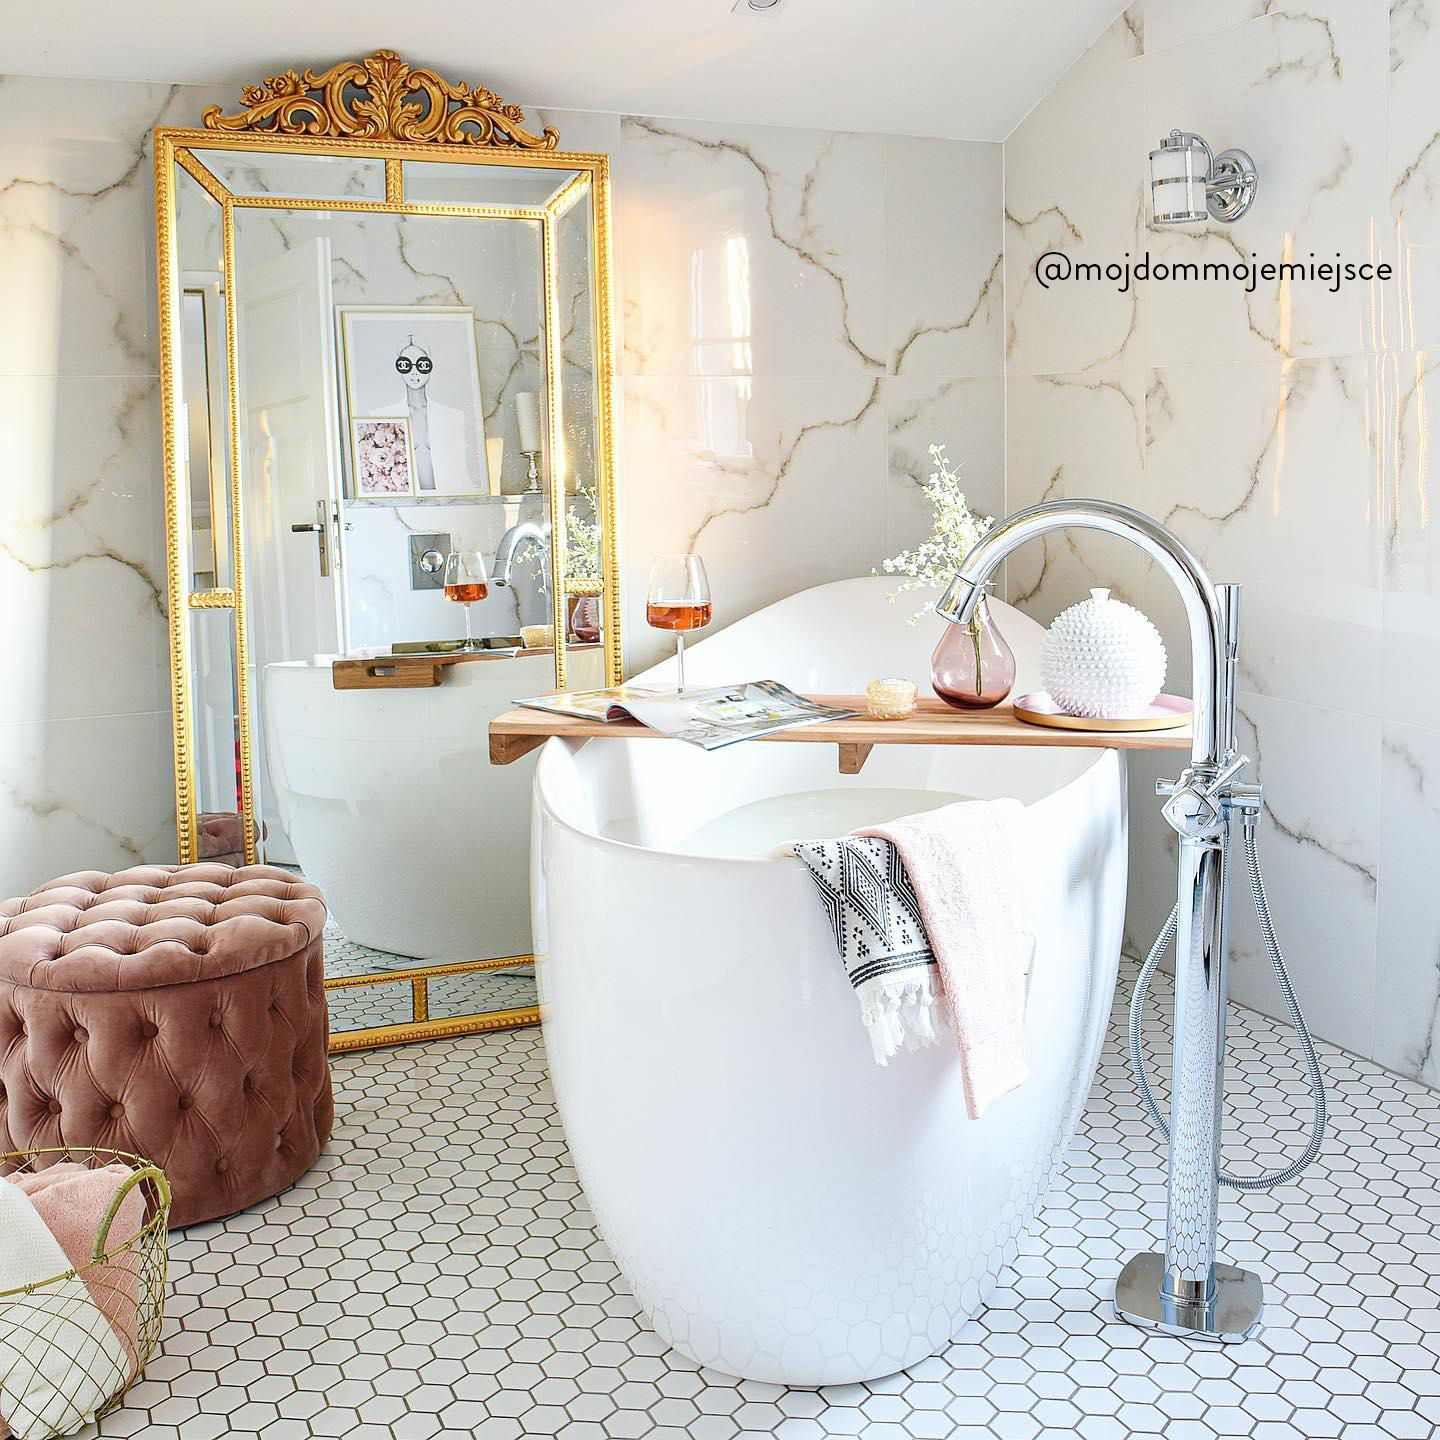 Me Time At Home Spa Westwingnow In 2020 Badezimmer Design Kleine Badezimmer Design Badezimmer Klein